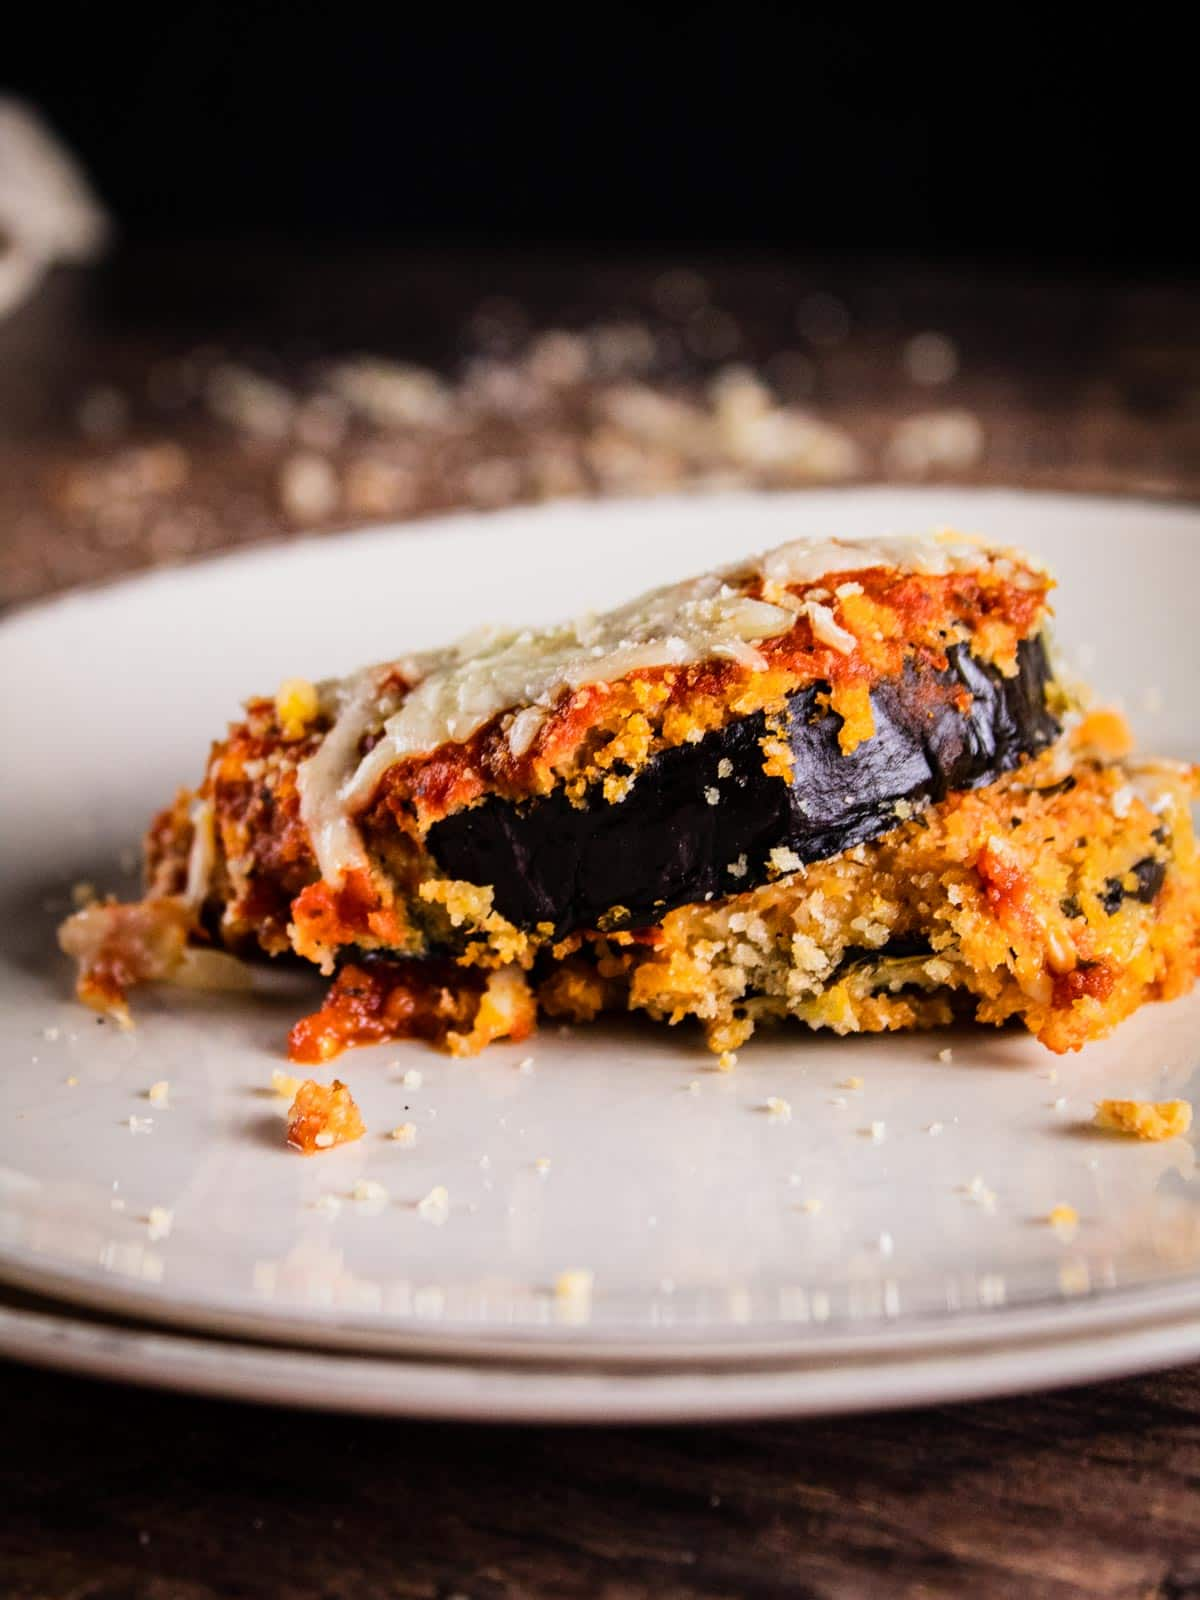 crispy baked eggplant slices with marinara and cheese